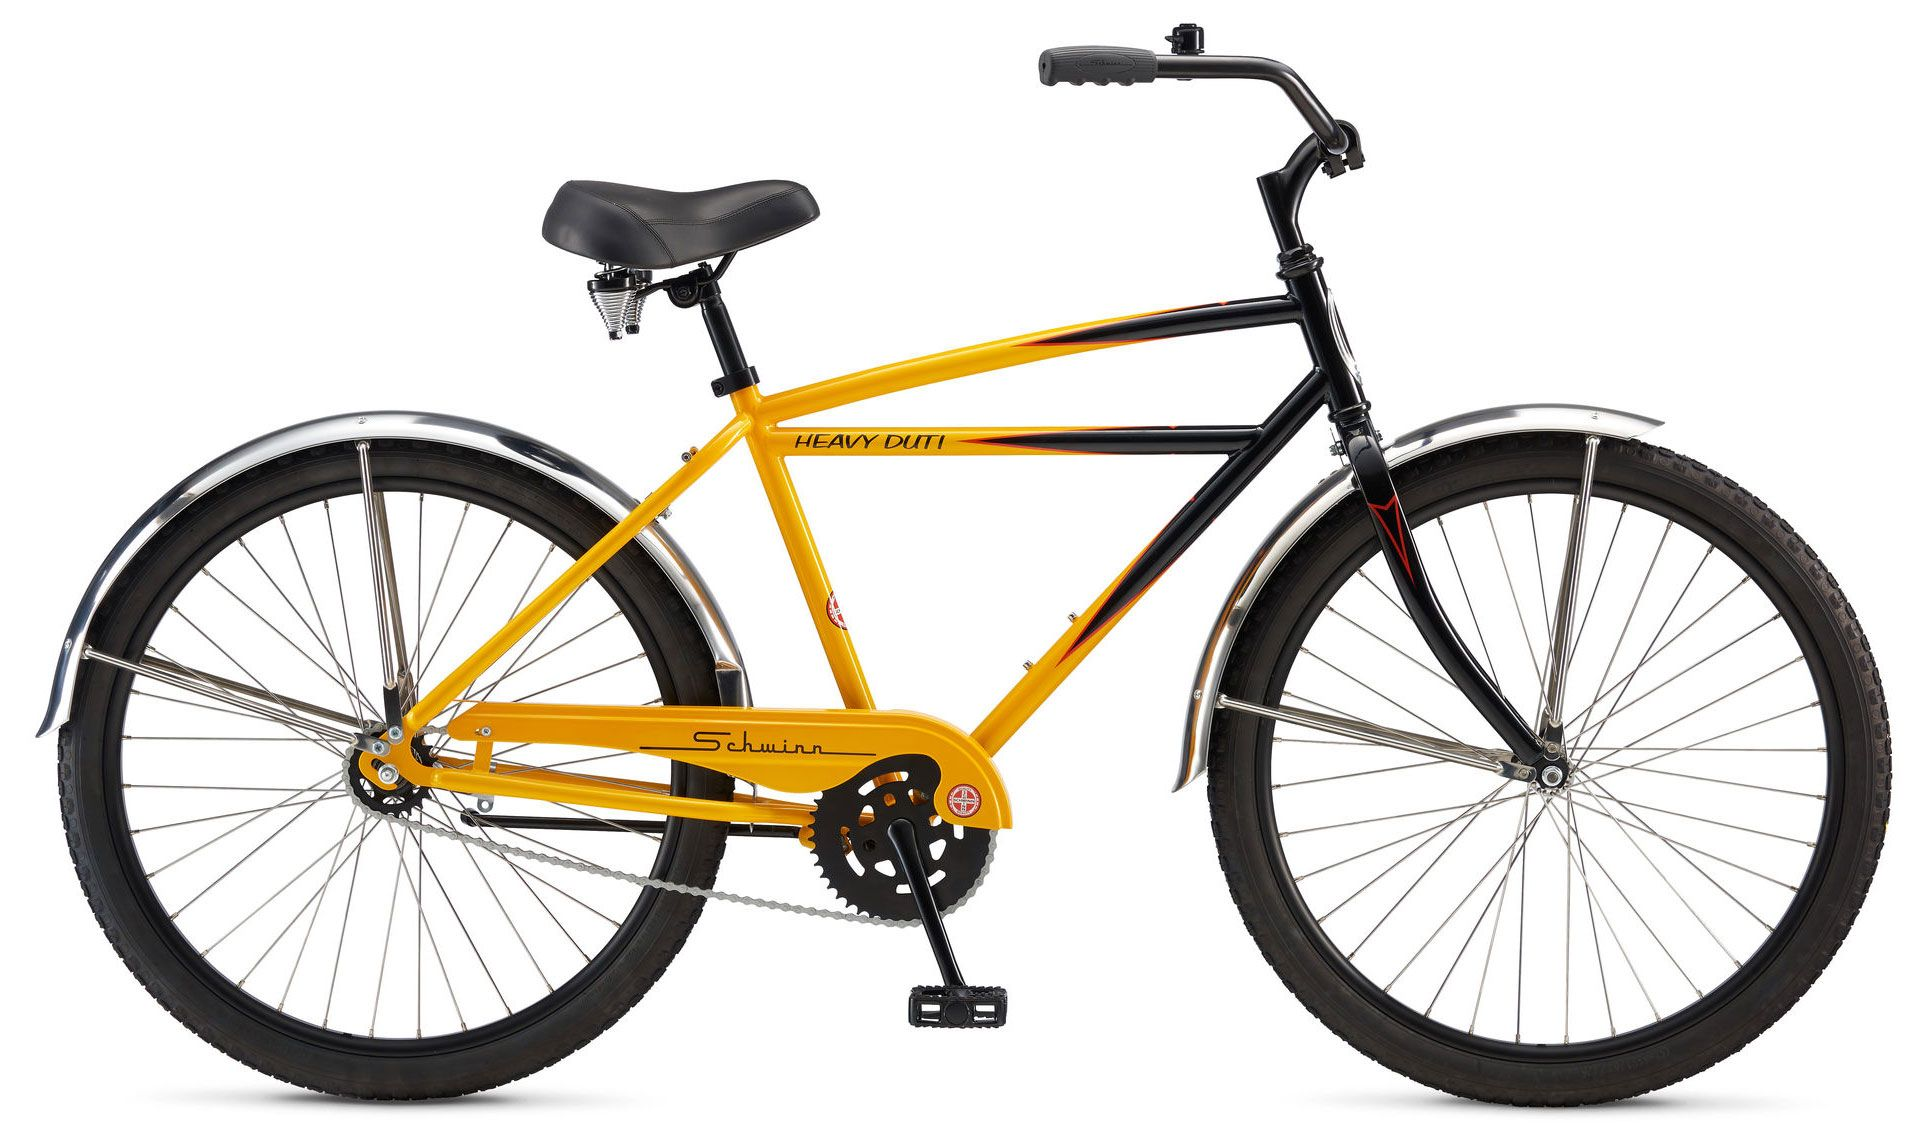 Велосипед Schwinn Heavy Duti 2018 велосипед electra cruiser lux 3i ladies 2016